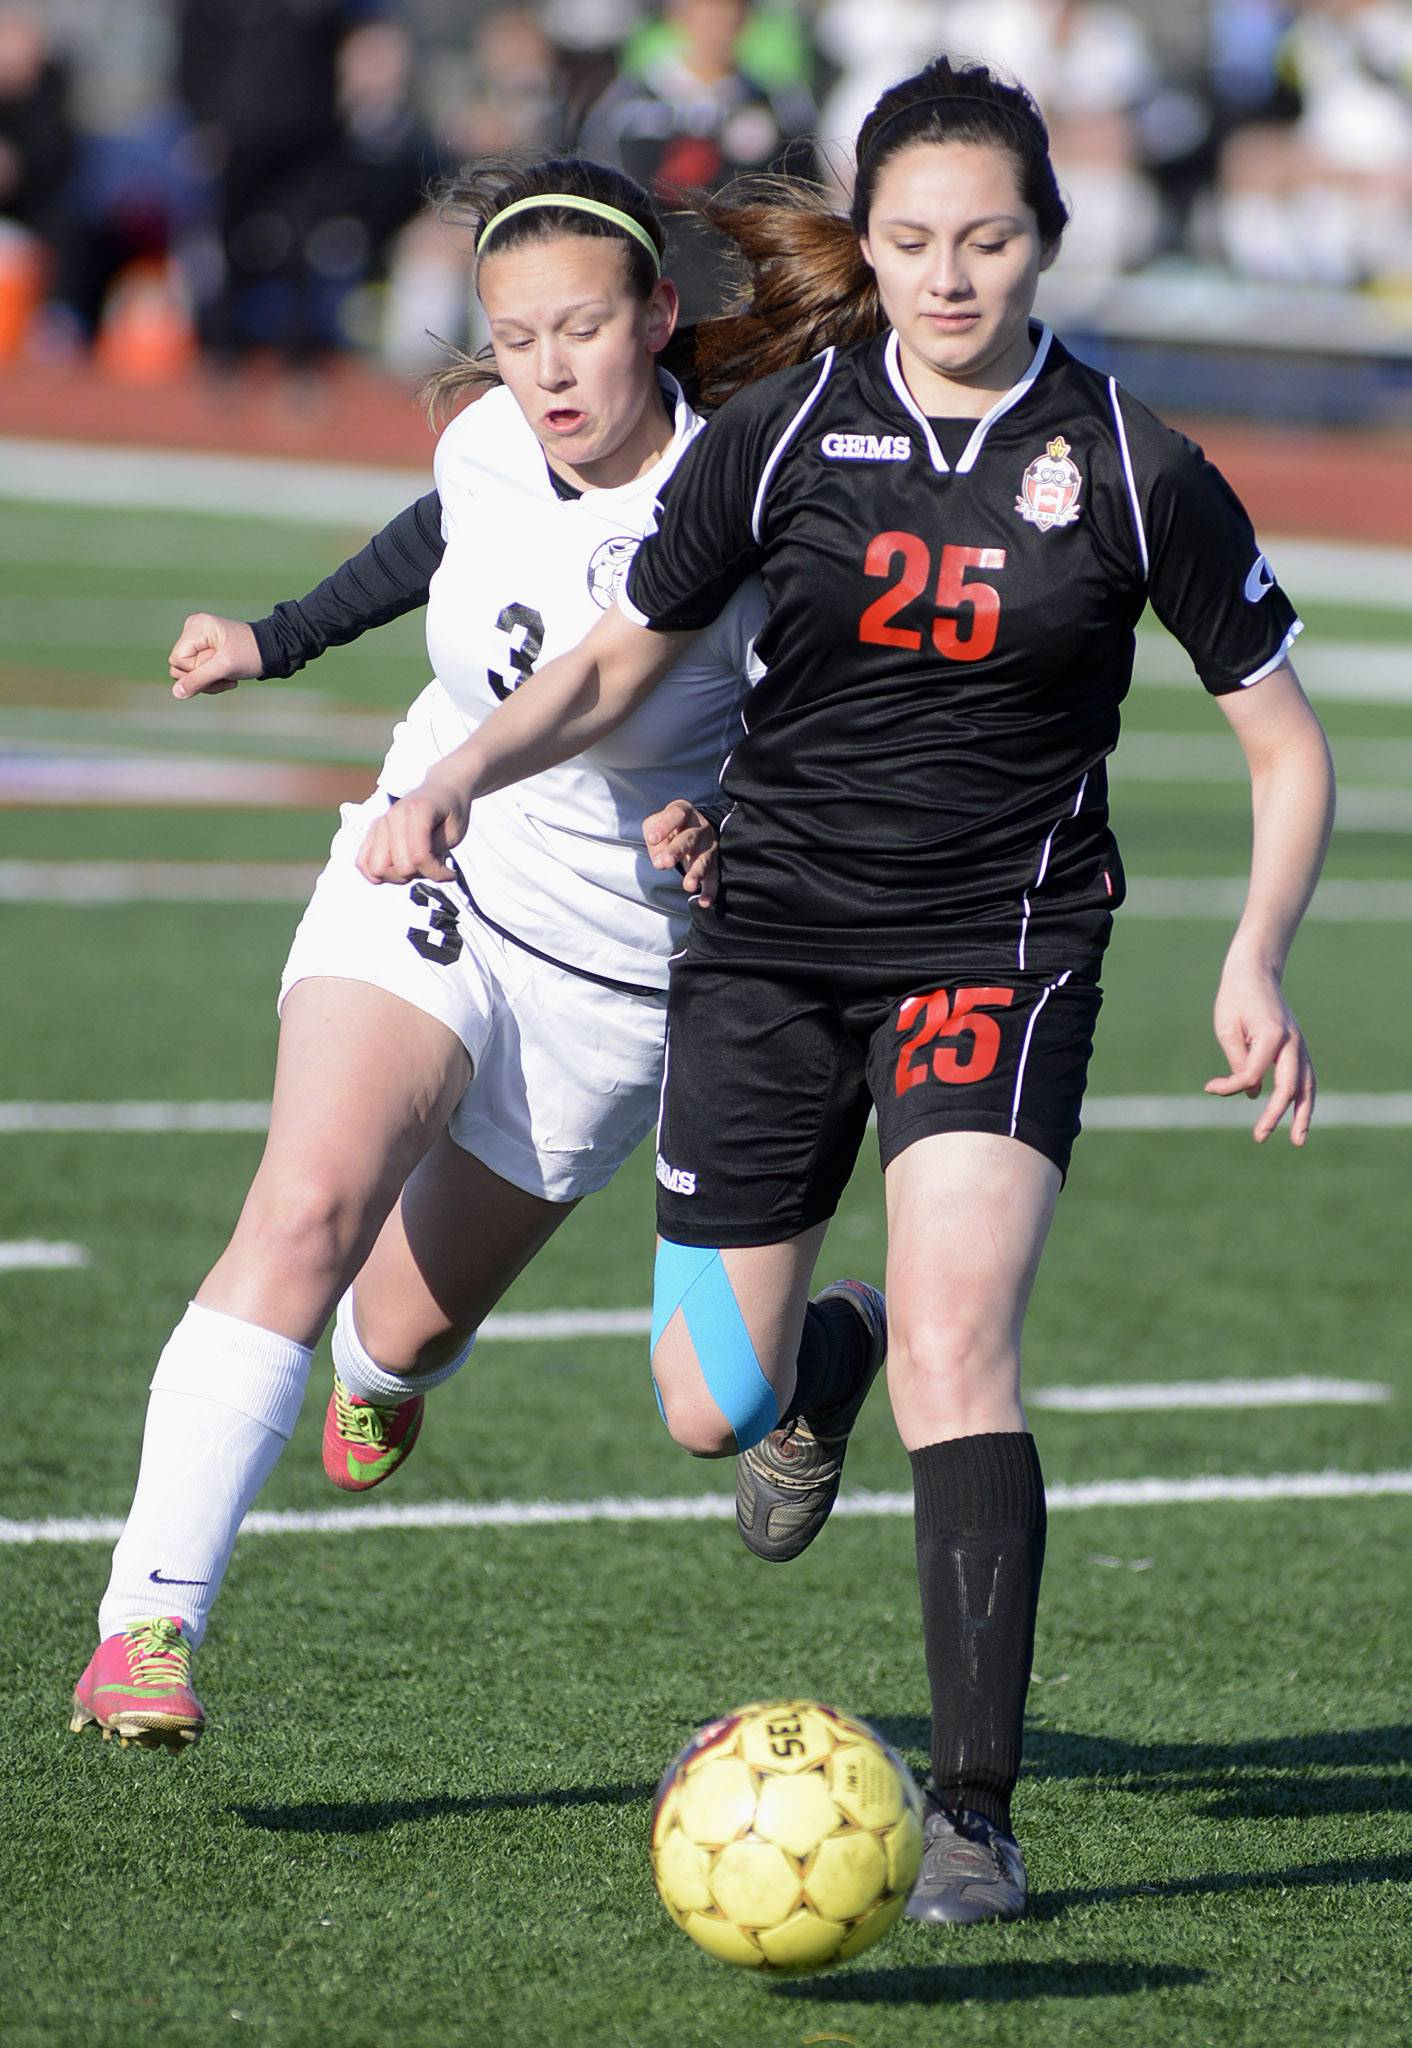 Kaneland's Ashley Crotteau, left, and East Aurora's Rita Oceguera in the second half on Wednesday, April 16.